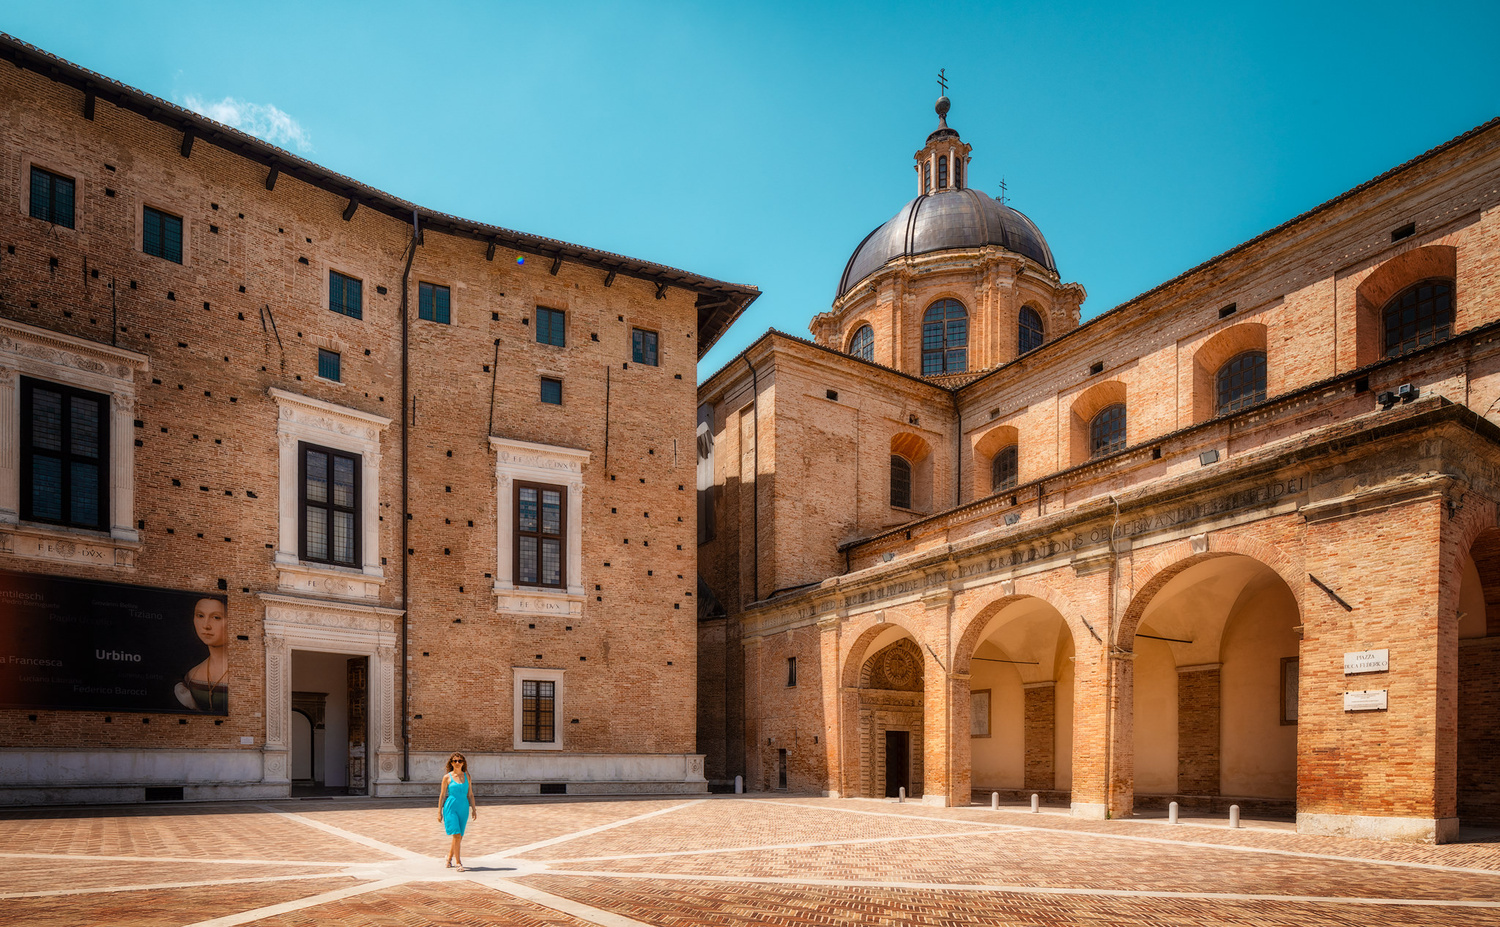 The Urbino Cathedral | Italy by Nico Trinkhaus